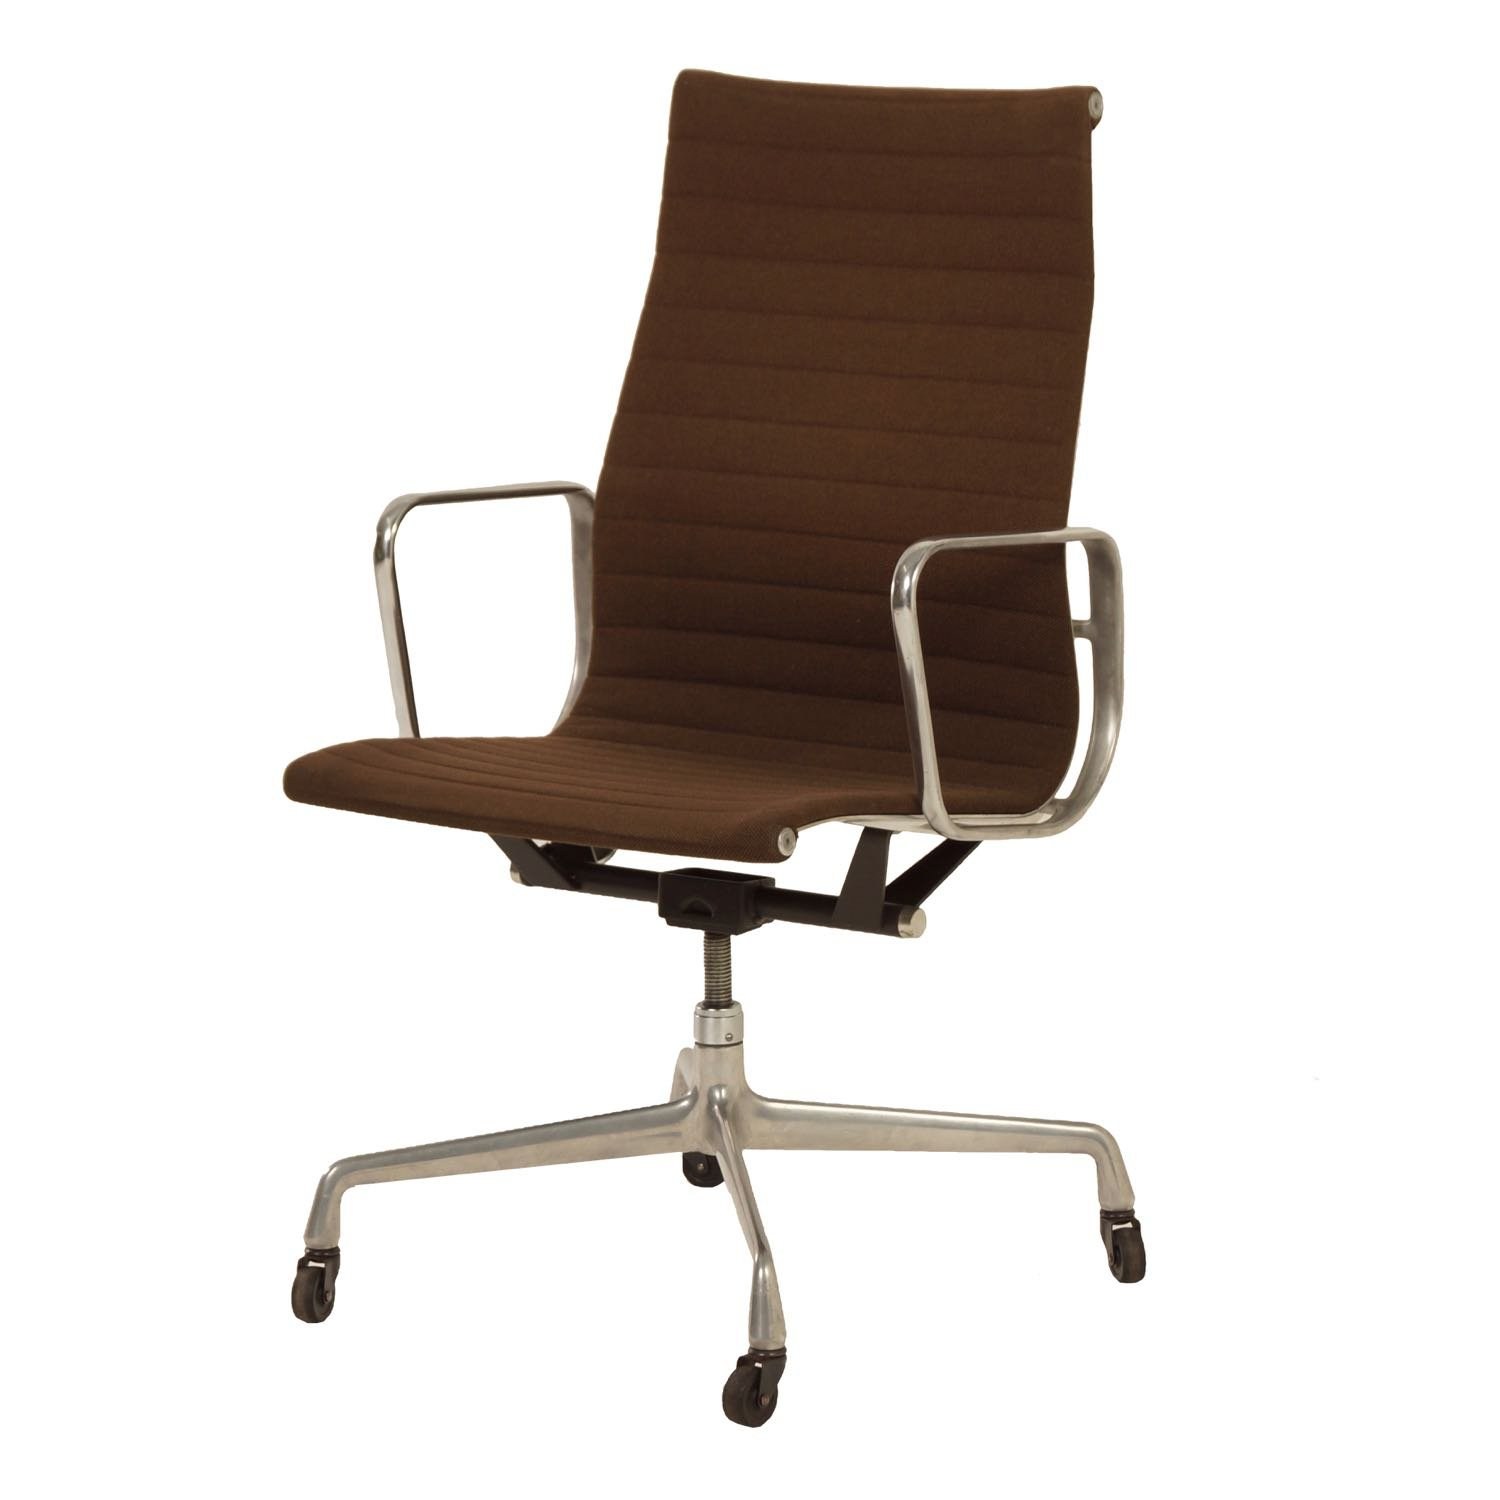 Original Chair Office By Miller Eames Ray Charlesamp; For Herman QdxBoreCW